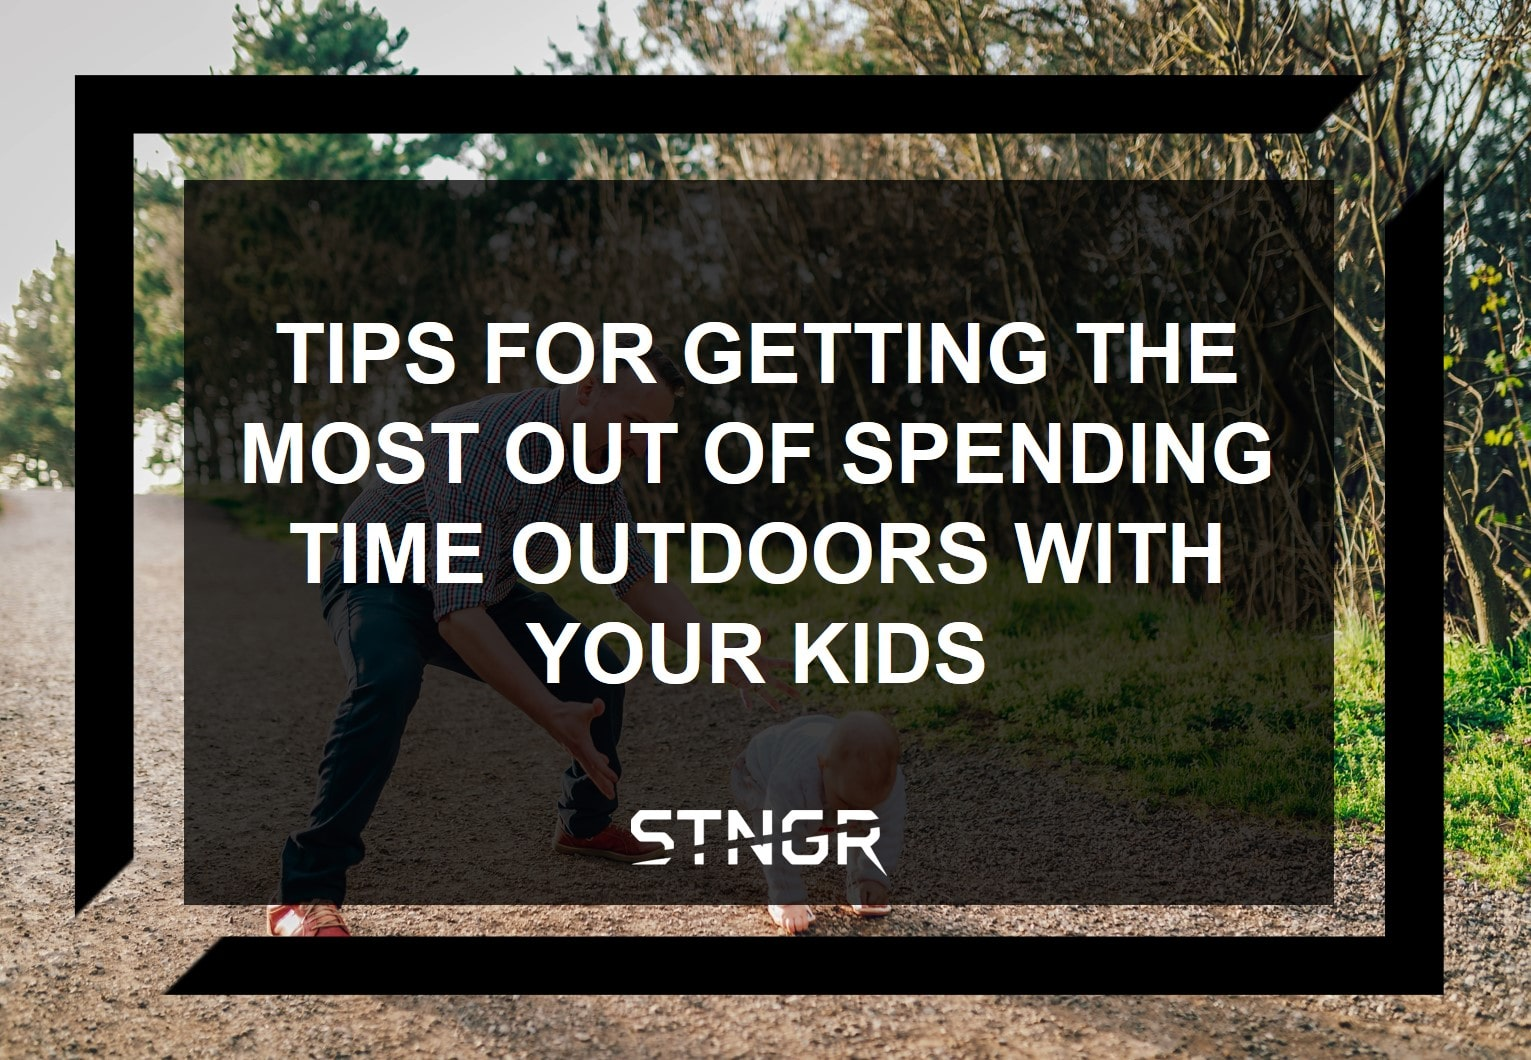 Tips For Getting The Most Out of Spending Time Outdoors With Your Kids